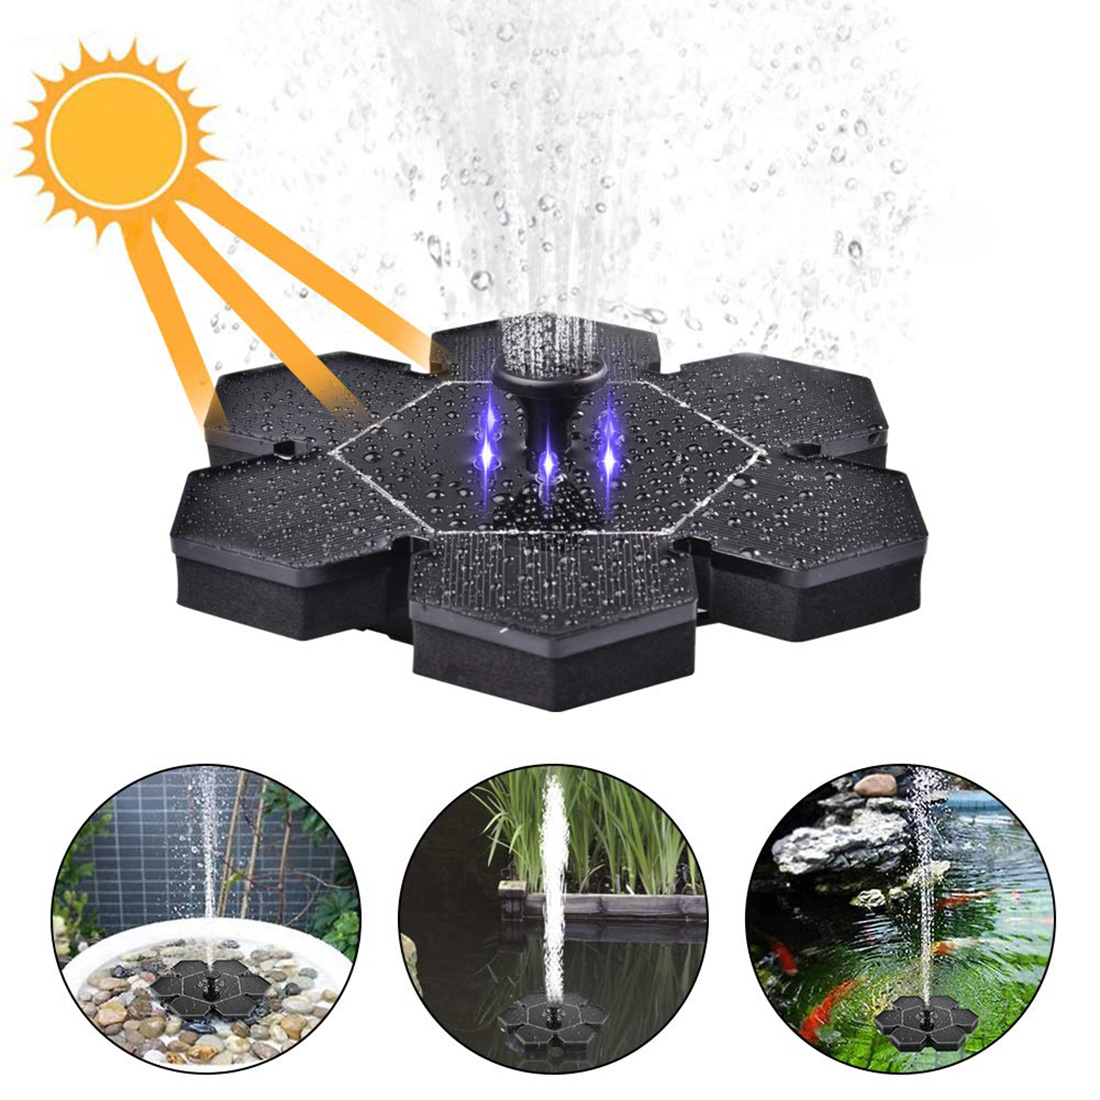 VICTMAX New Solar powered Floating Fountain With Led Light Water Pump Panel Kit for Pond Garden Decoration Drop Shipping